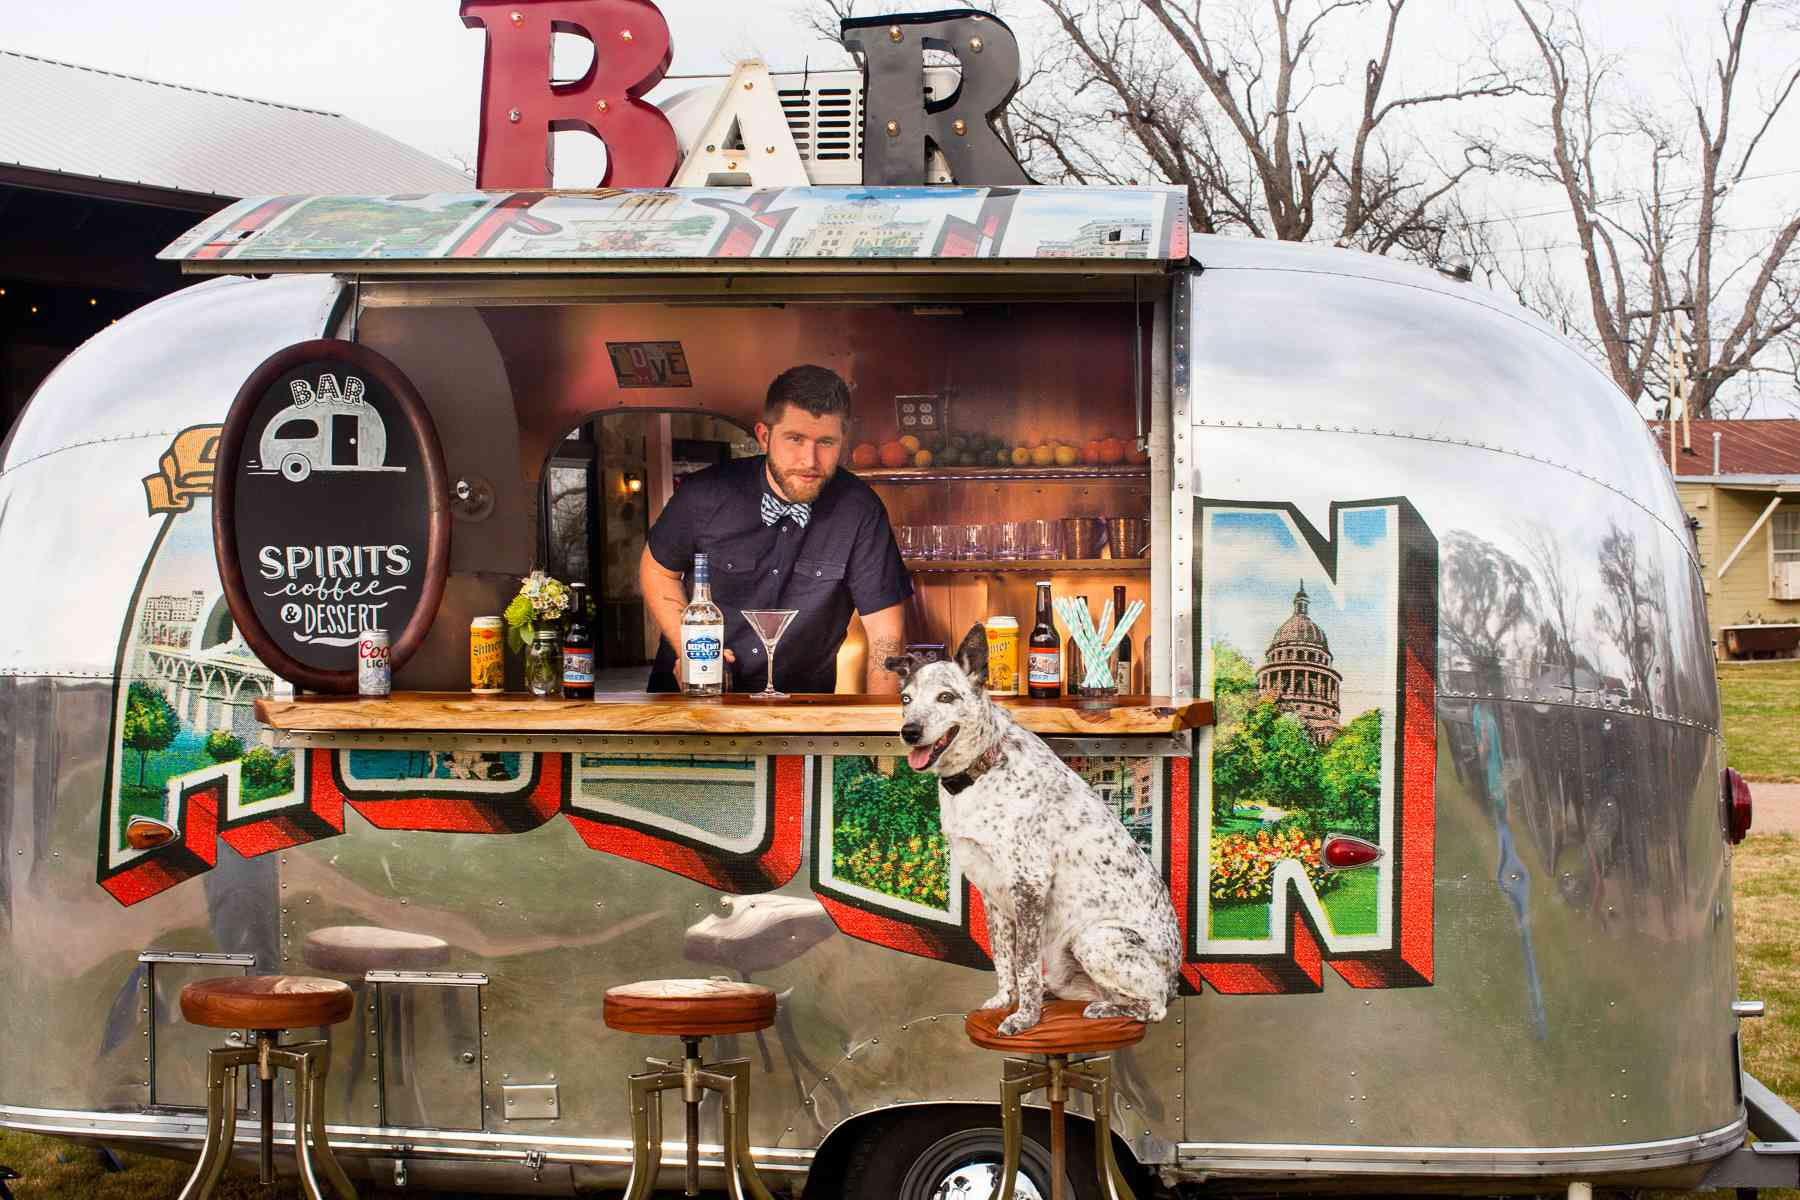 Mobile bar with bartender and dog at a wedding reception